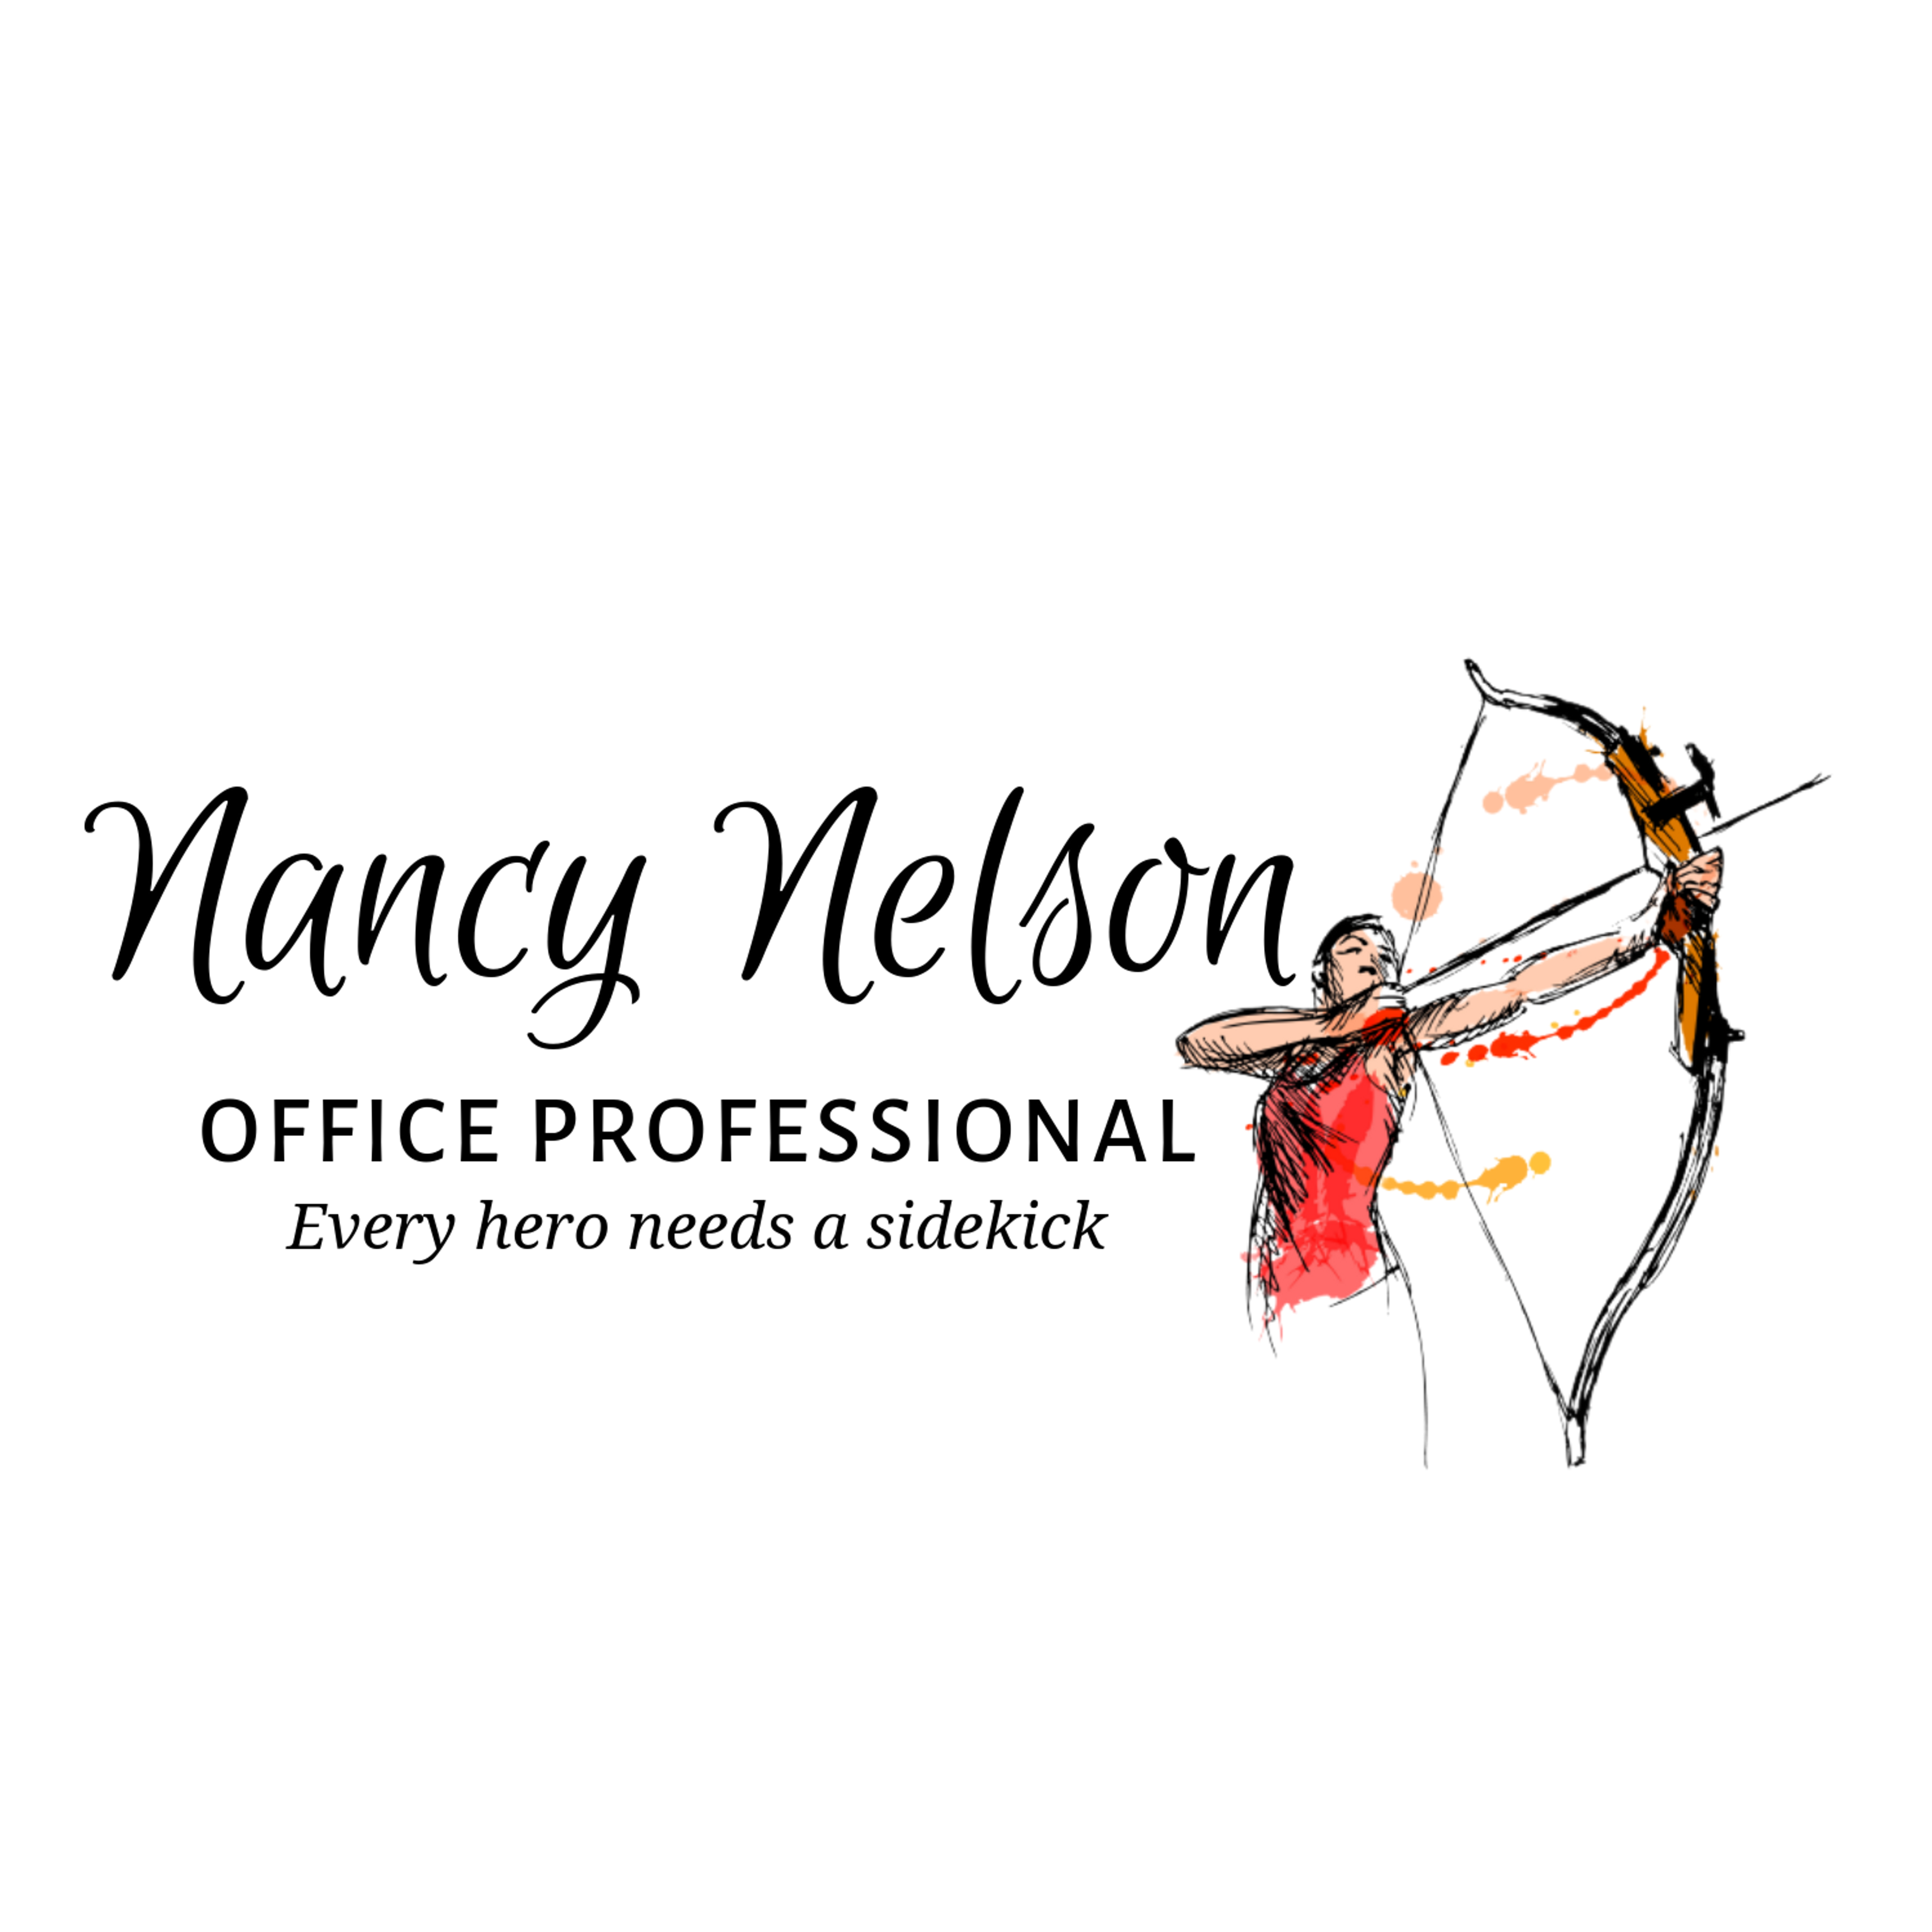 Nancy Nelson, Office Professional